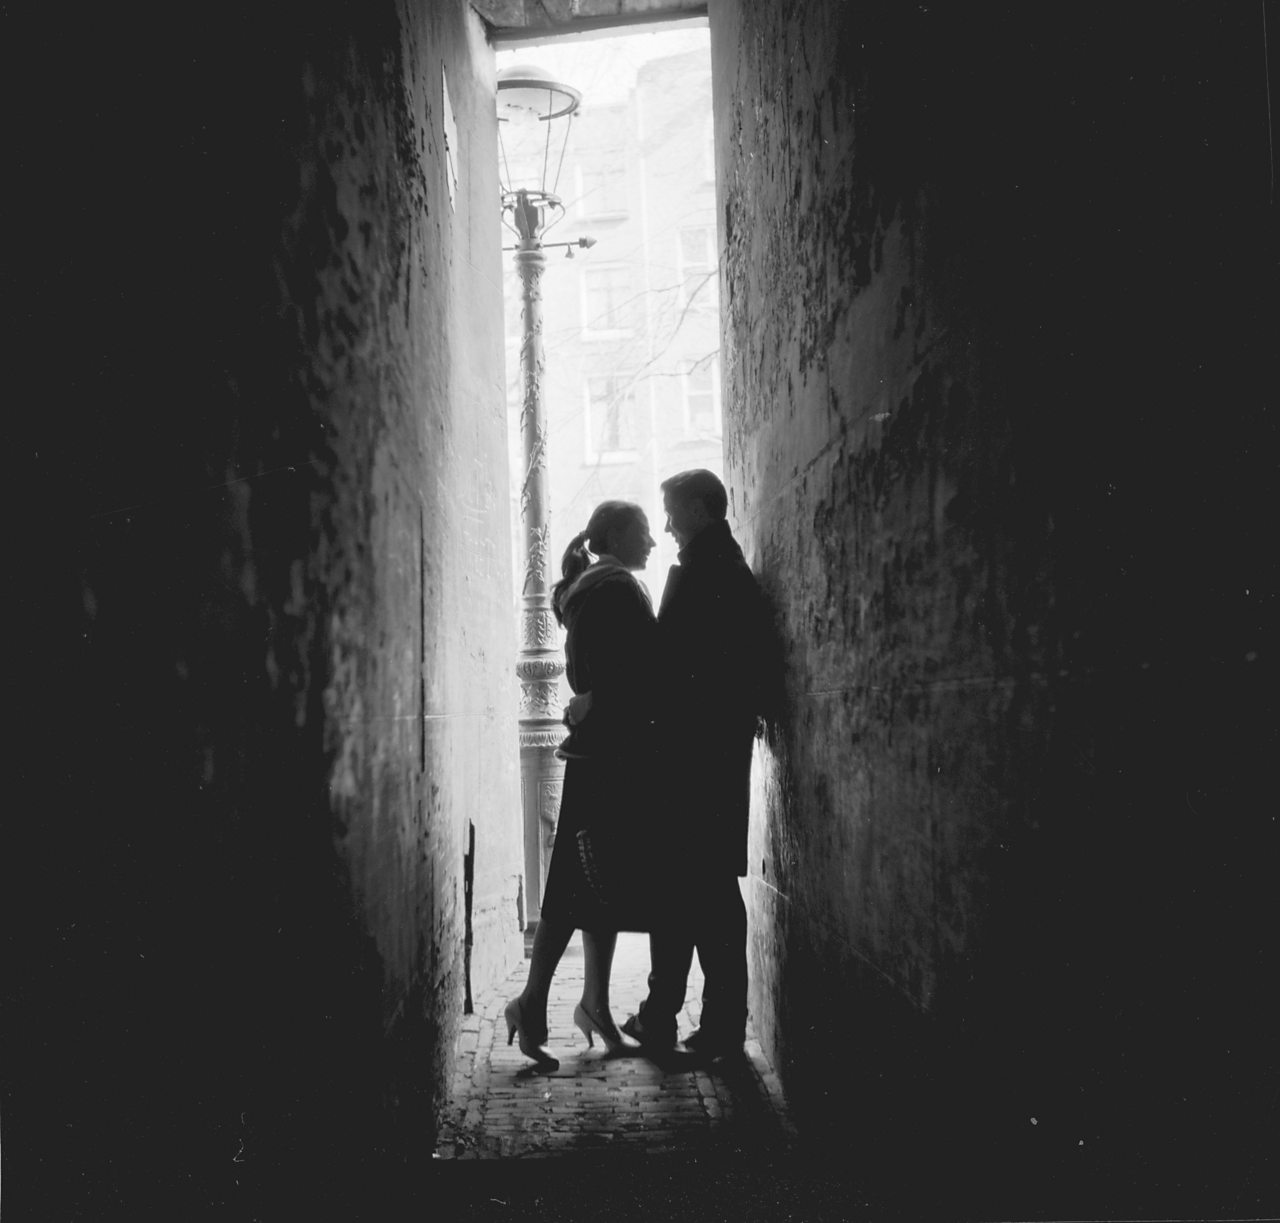 Photograph of a couple in an alley way, suggesting they are engaged in an extra-marital or illicit affair.